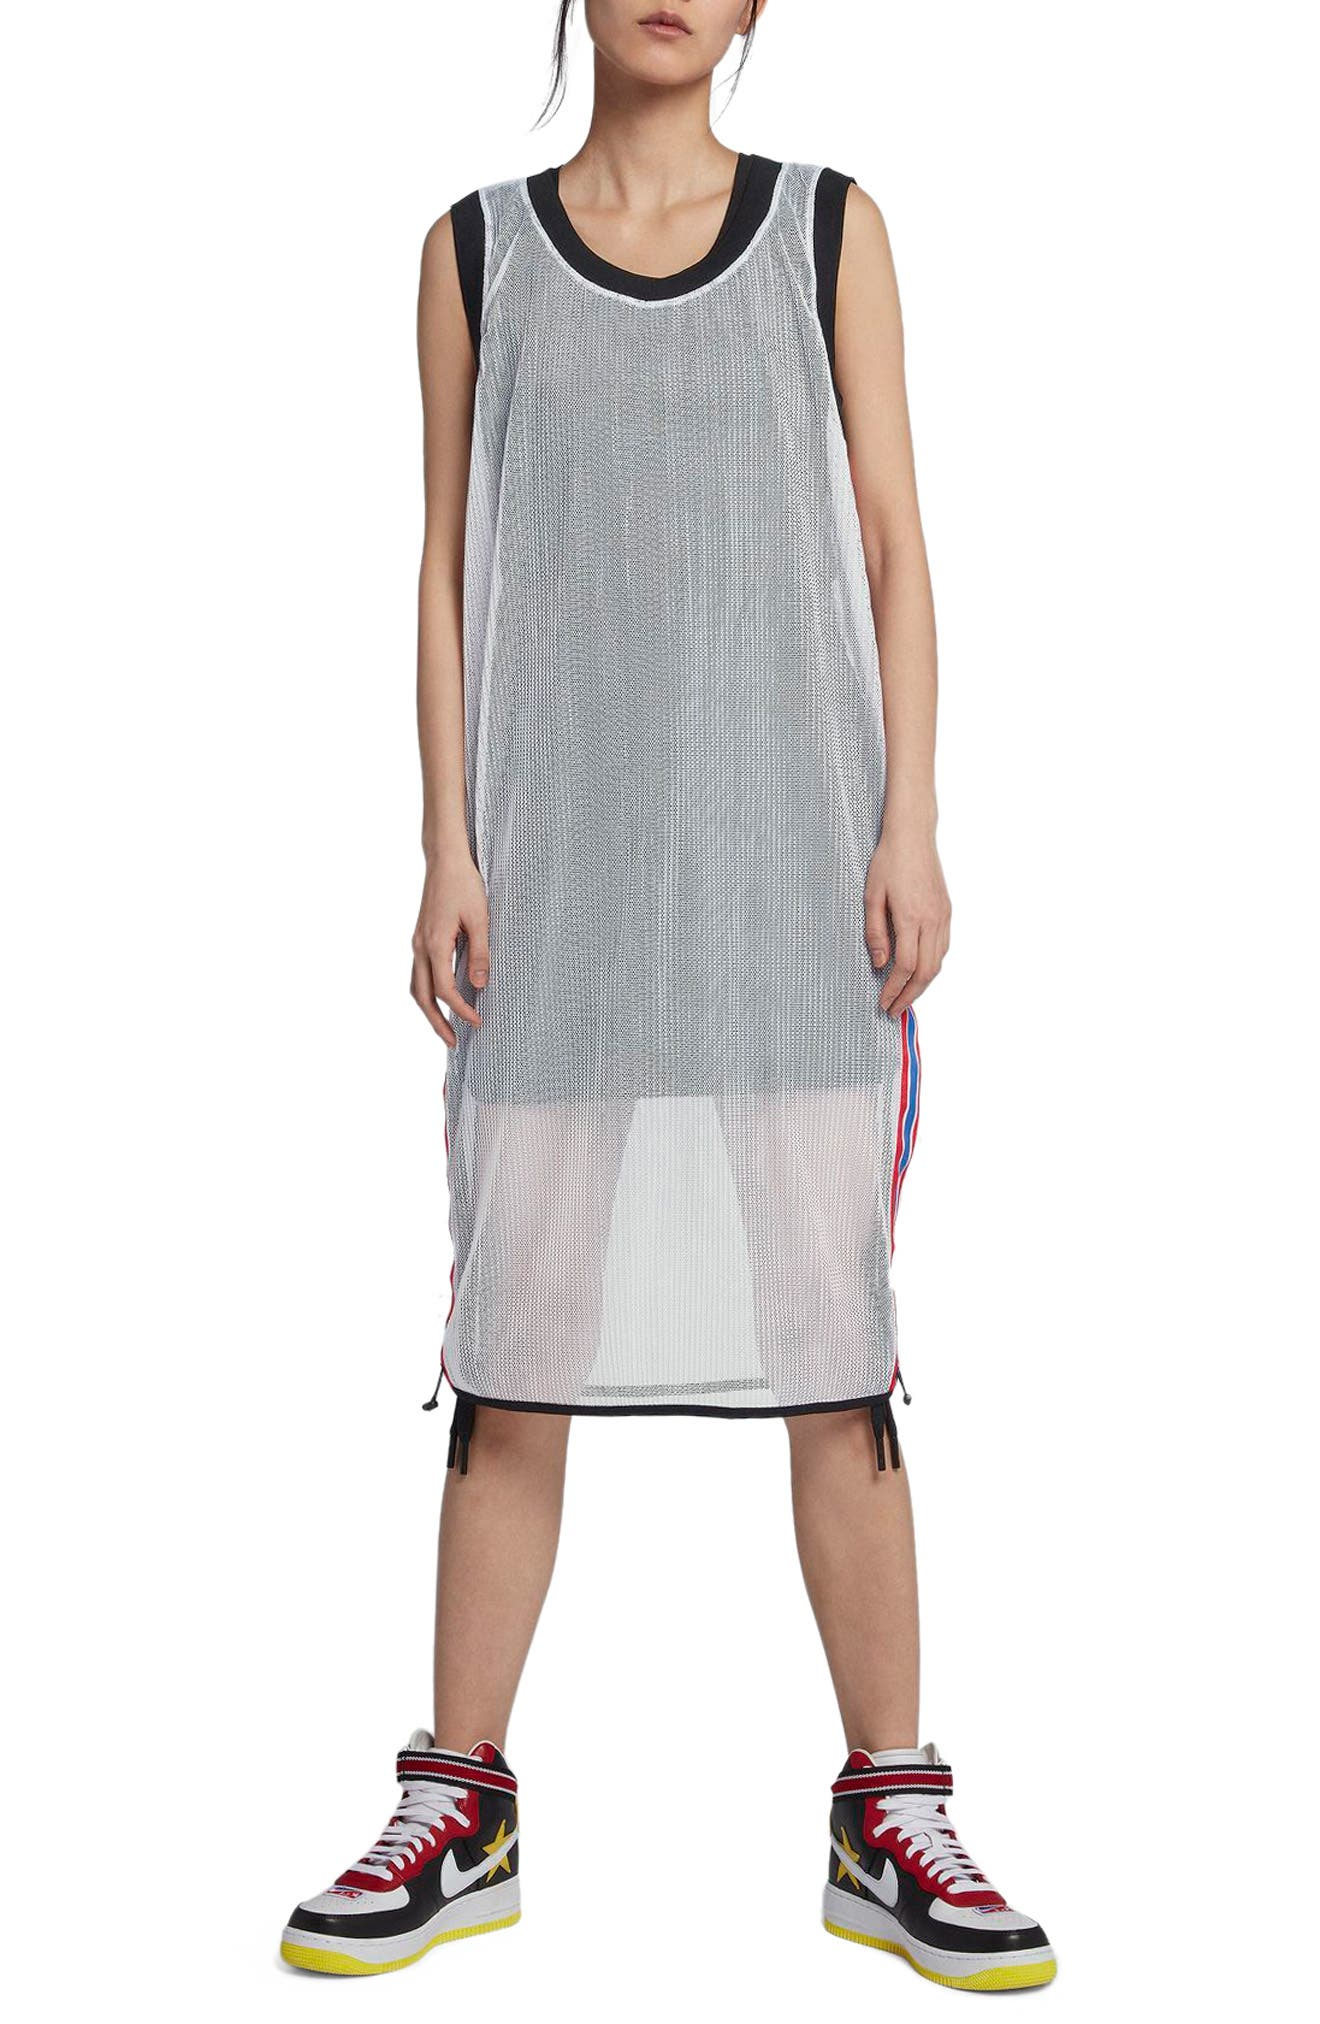 NikeLab x RT Mesh Jersey Dress,                         Main,                         color, White